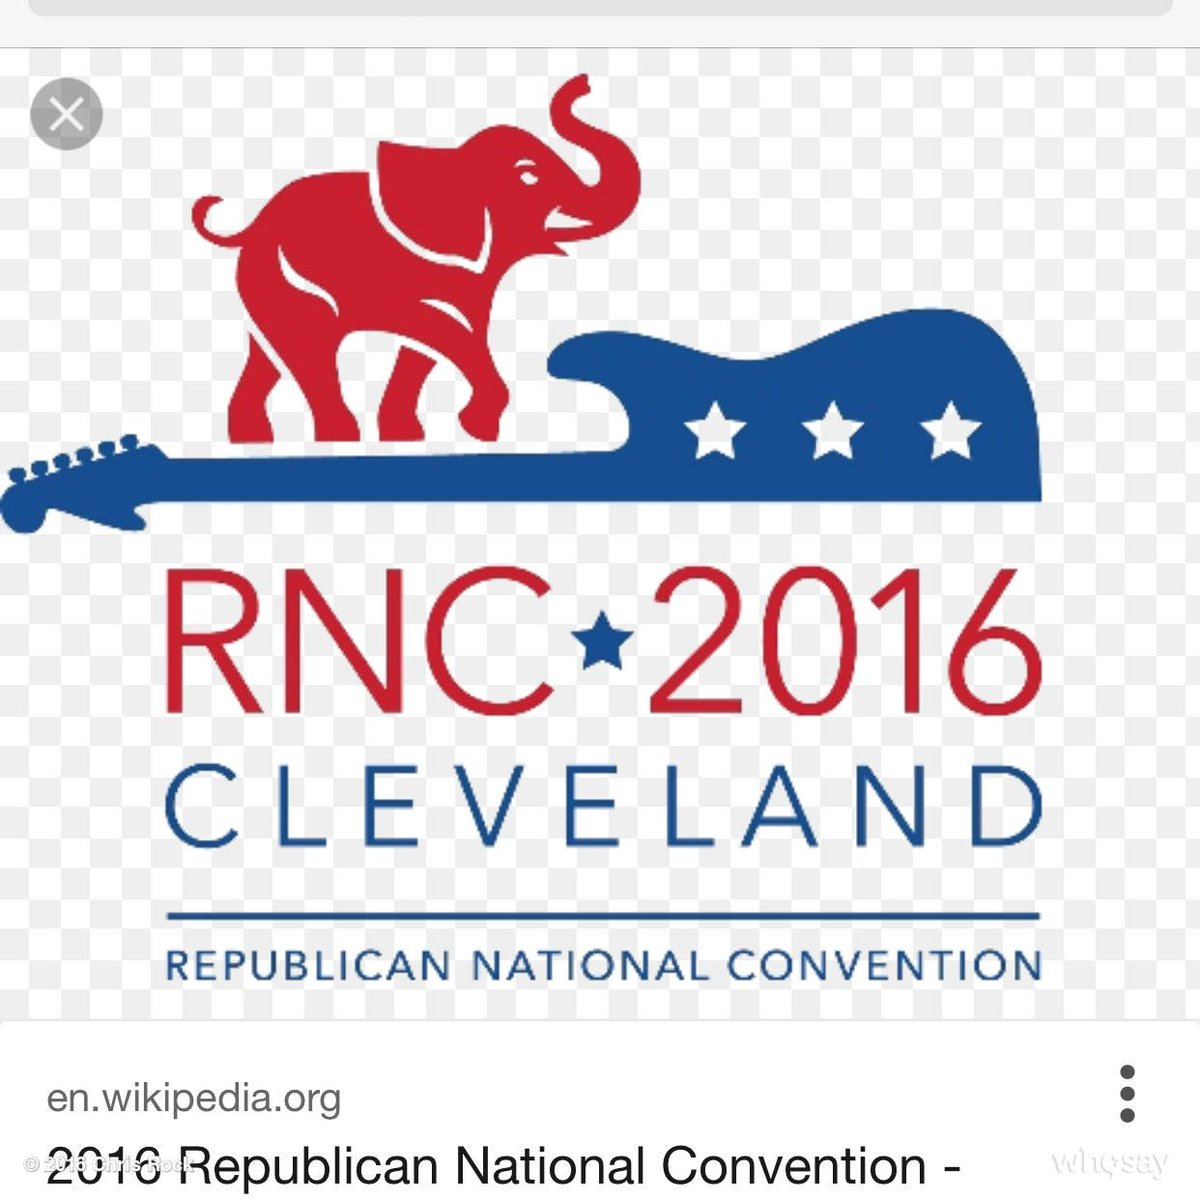 I'm watching the republican convention it's pretty good. What time does George Zimmerman speak. https://t.co/uafItbHcrs